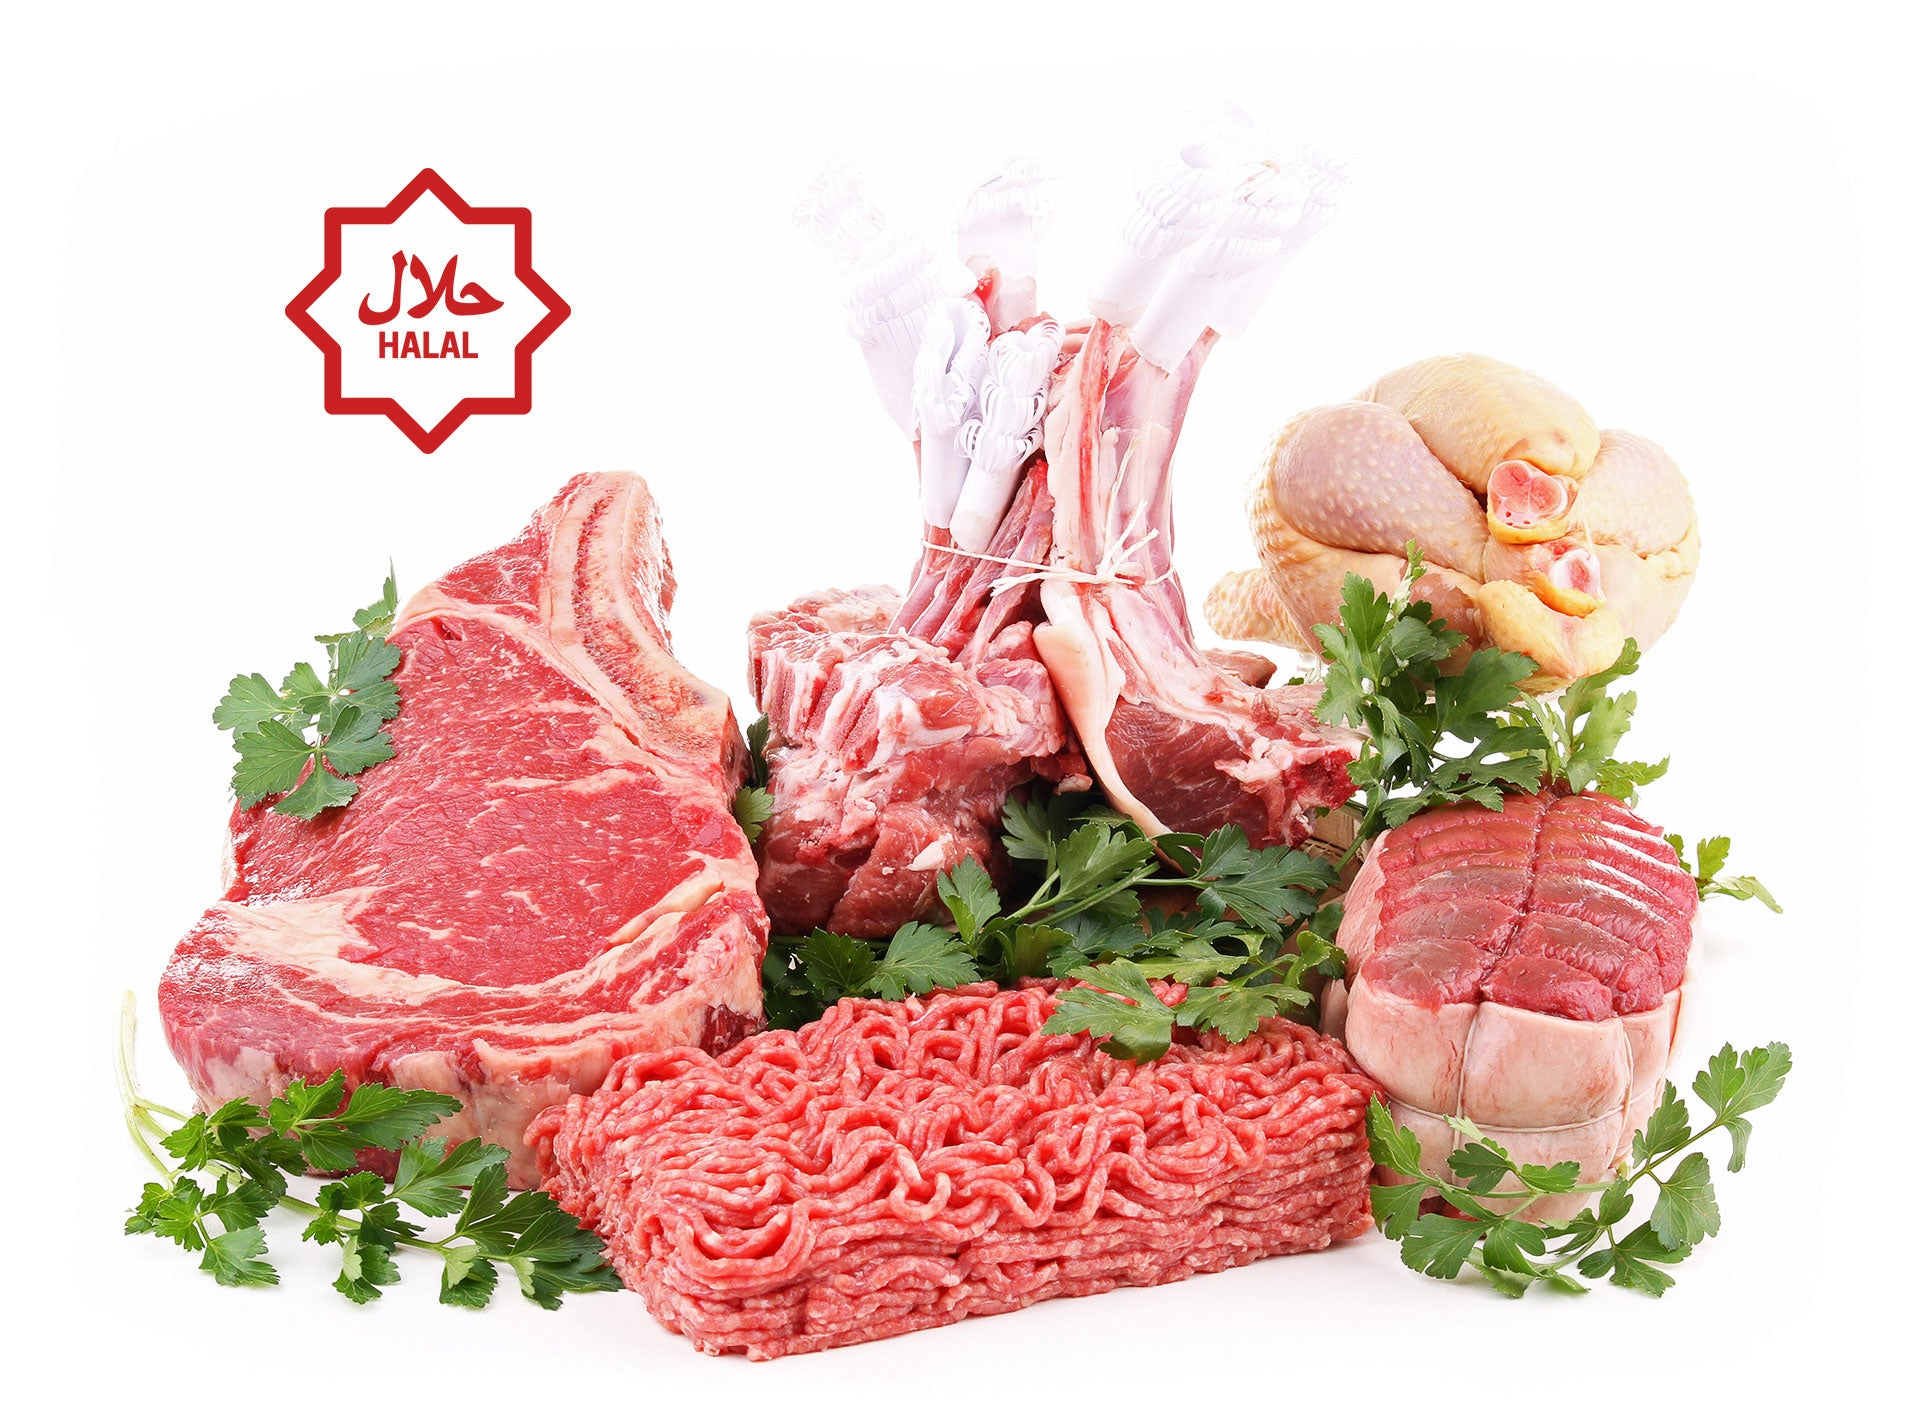 Excite the meat-enthusiasts